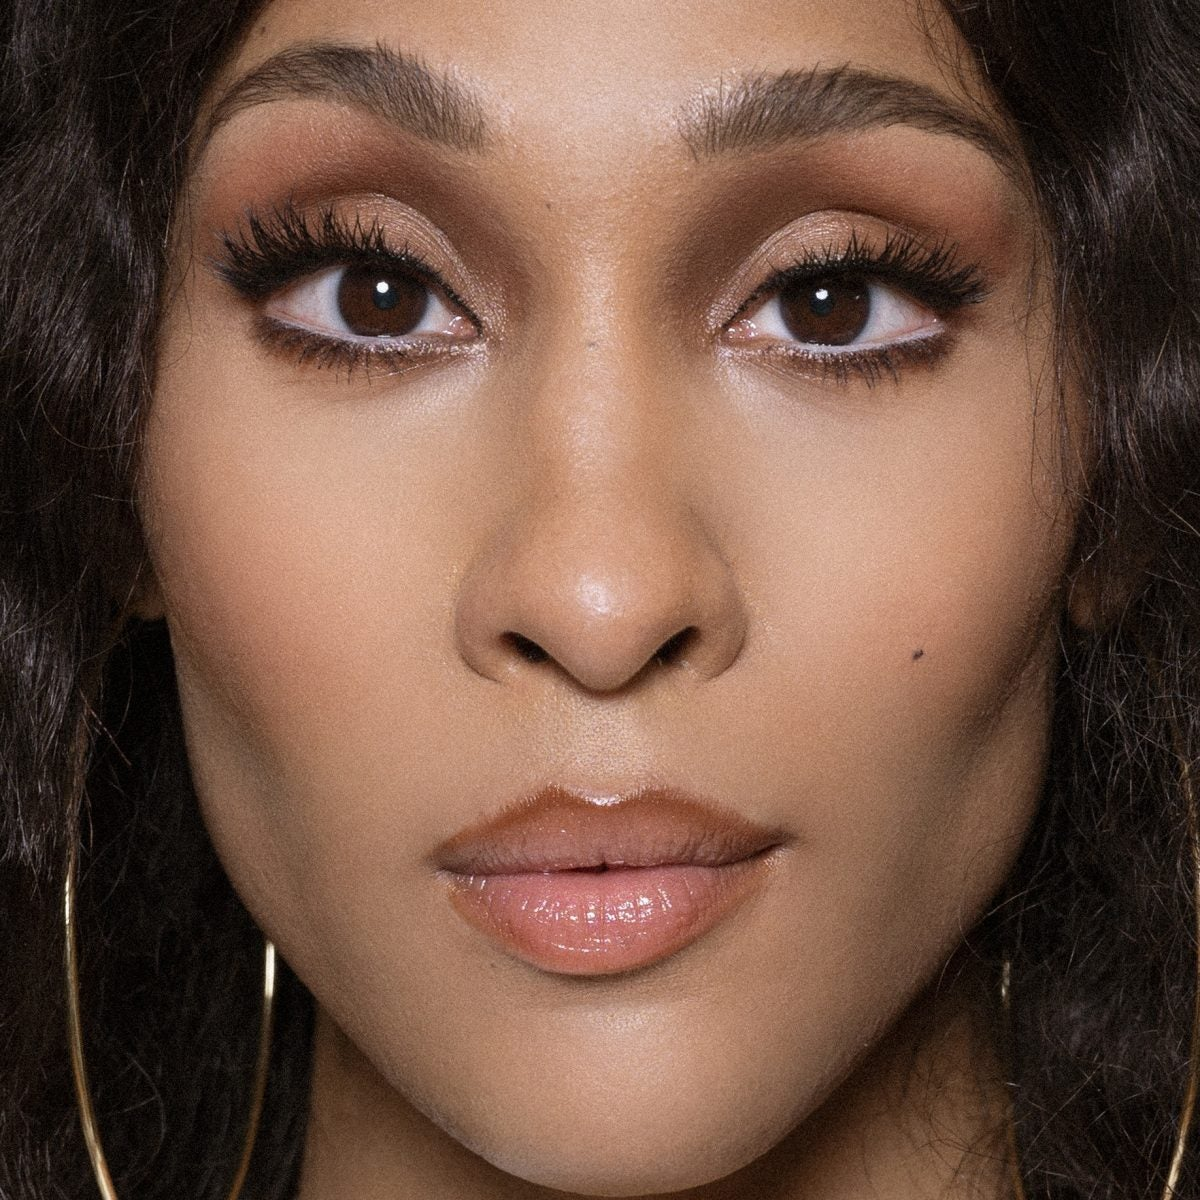 MJ Rodriguez On Transitioning Out Of 'Pose' With New AppleTV+ Comedy: 'The Sky Is Literally Limitless'